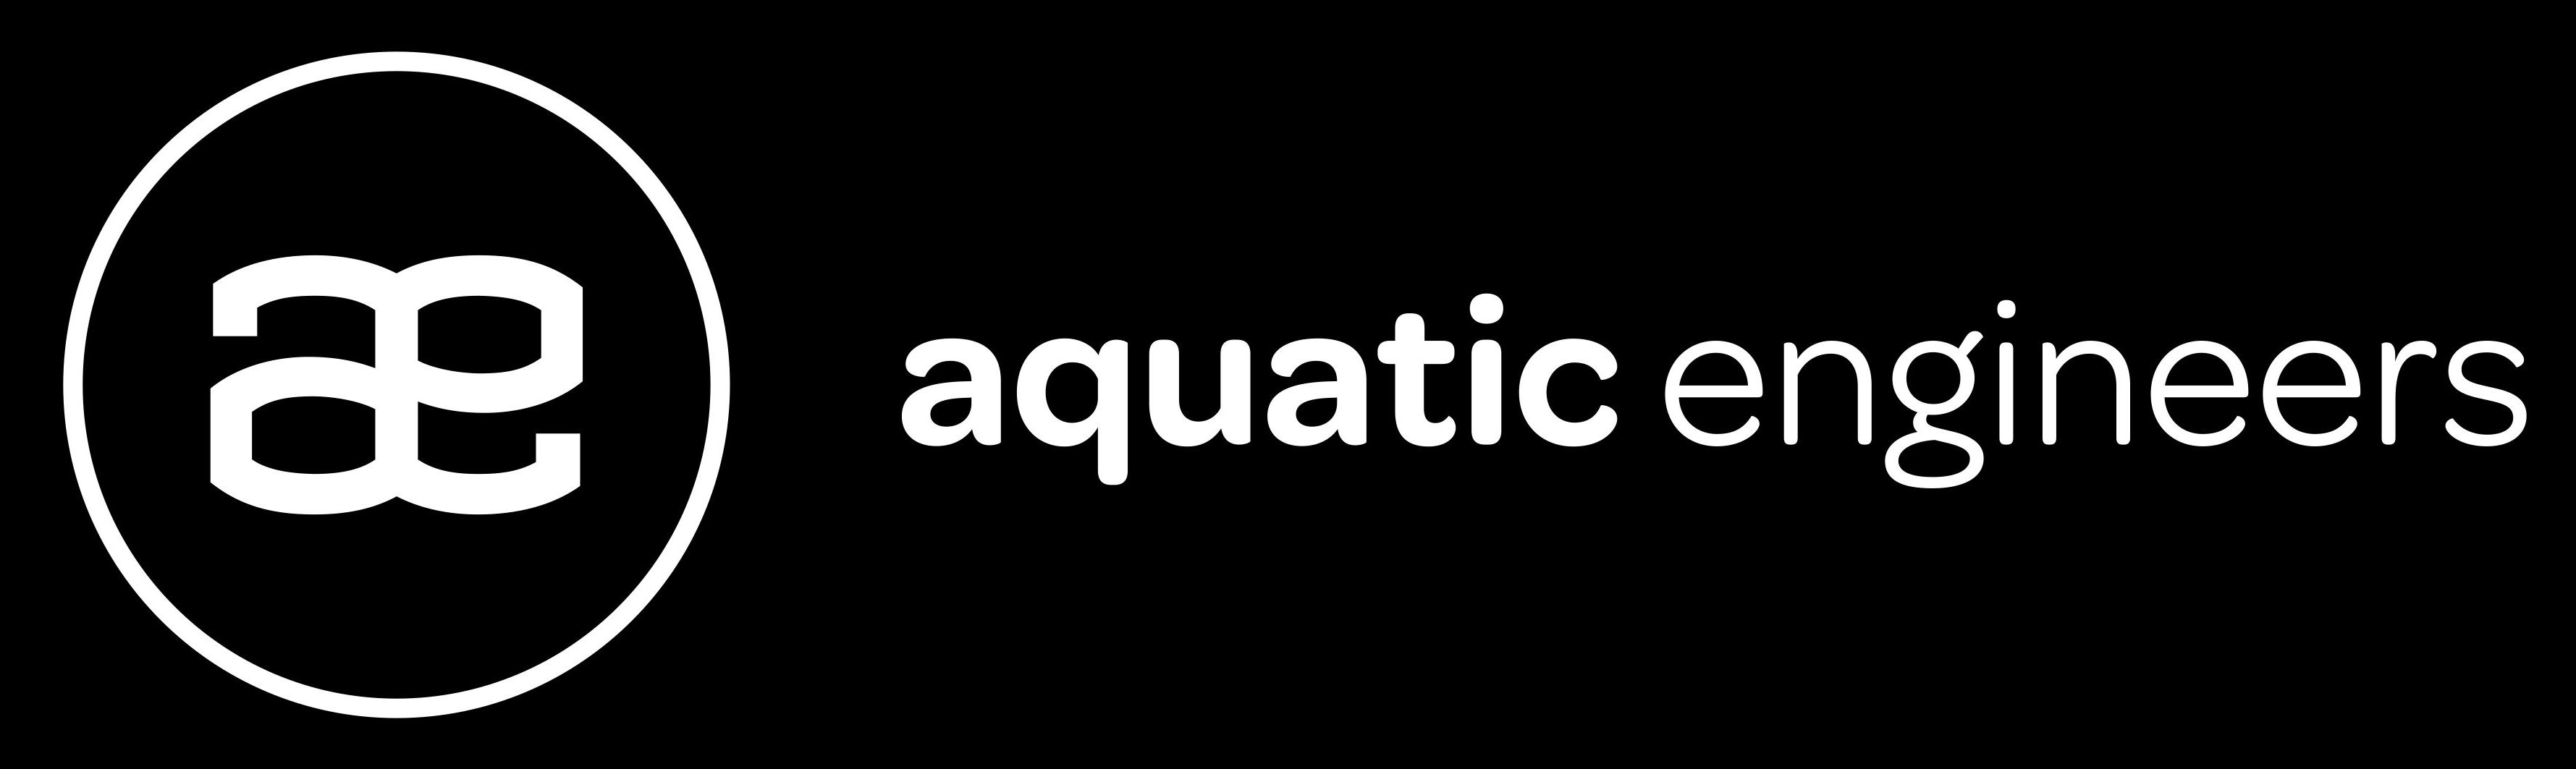 Aquatic Engineers logo